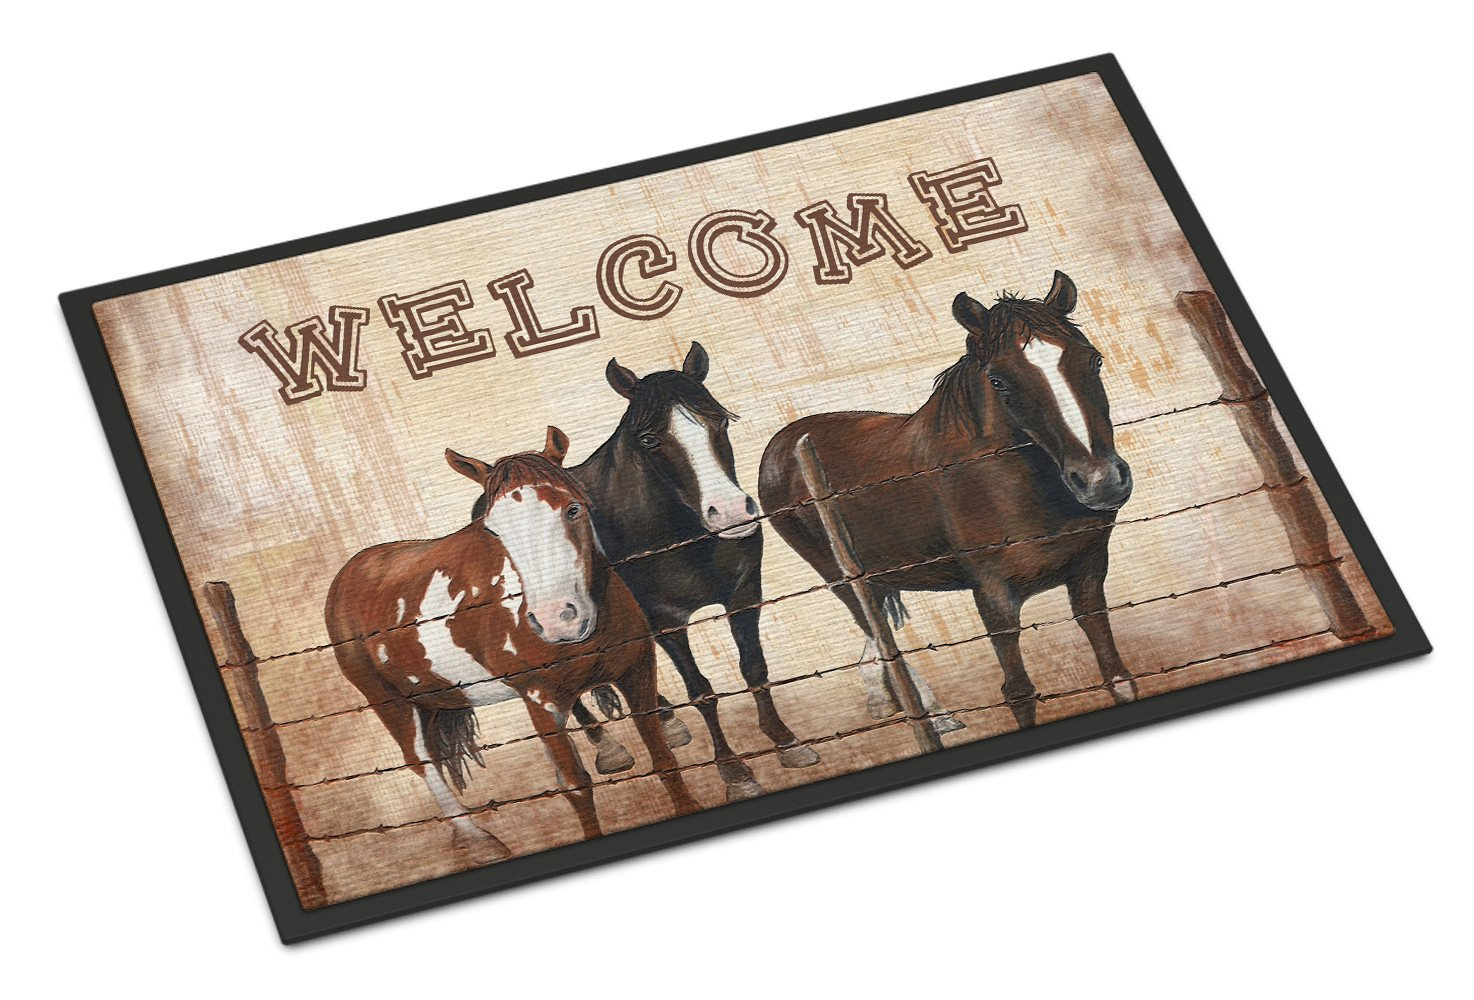 Welcome Mat with Horses Indoor or Outdoor Mat 18x27 SB3059MAT - the-store.com